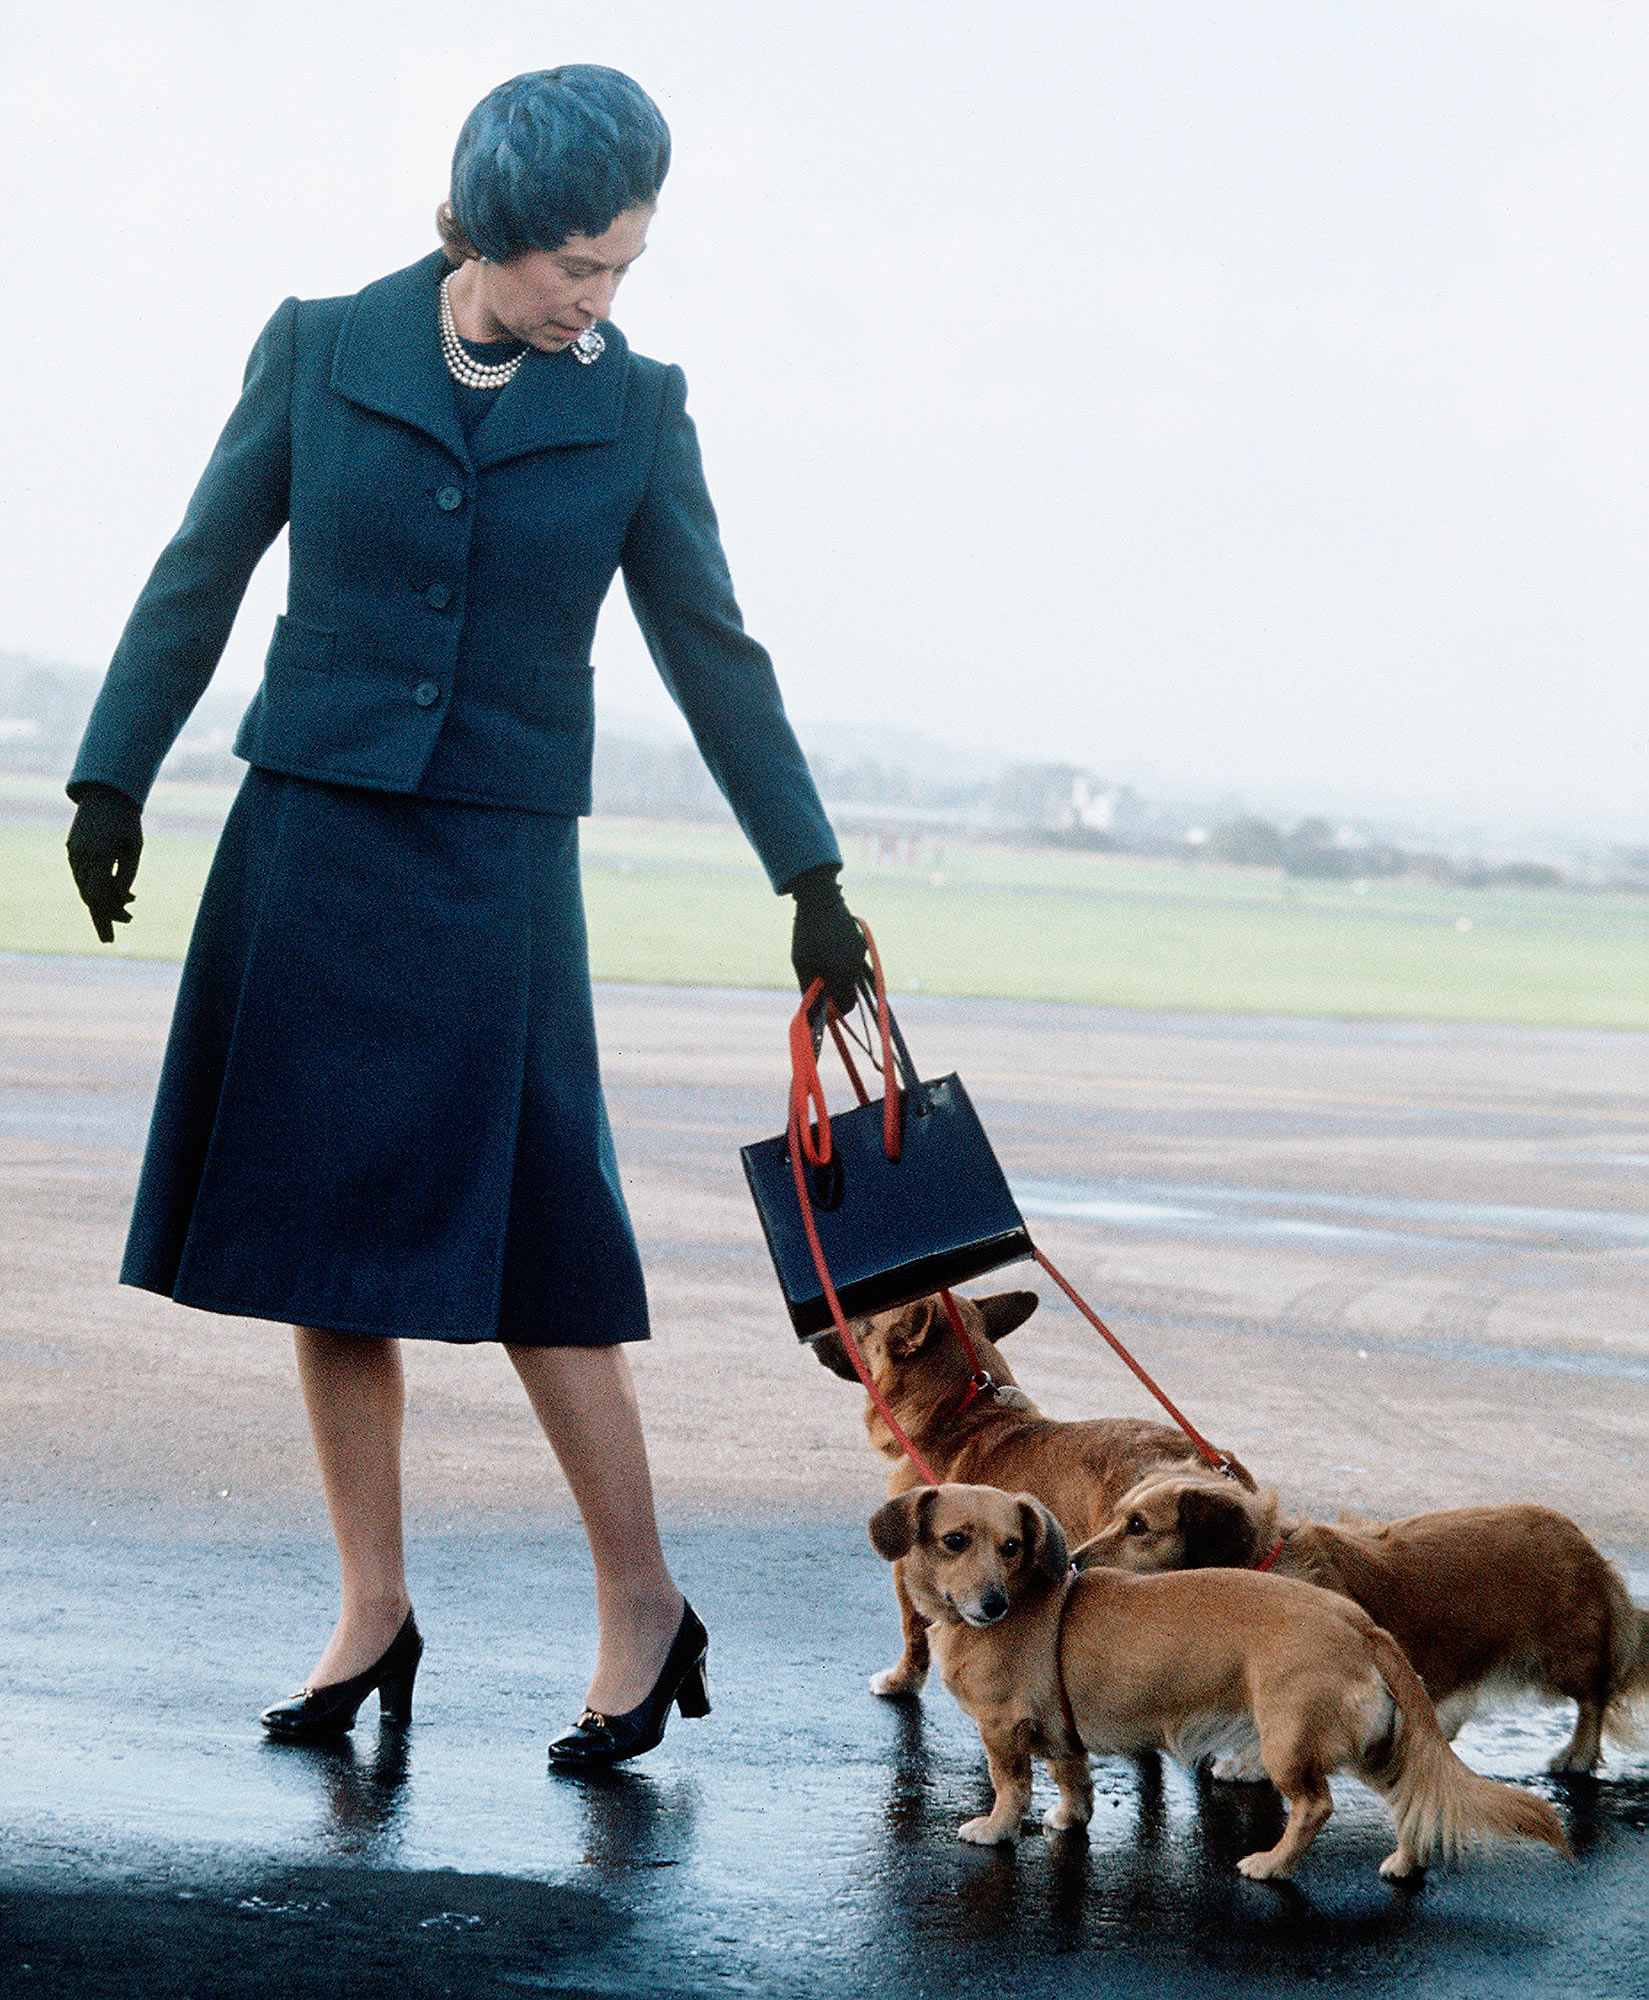 Queen Elizabeth's Last Corgi, Whisper, Has Died at Windsor Castle